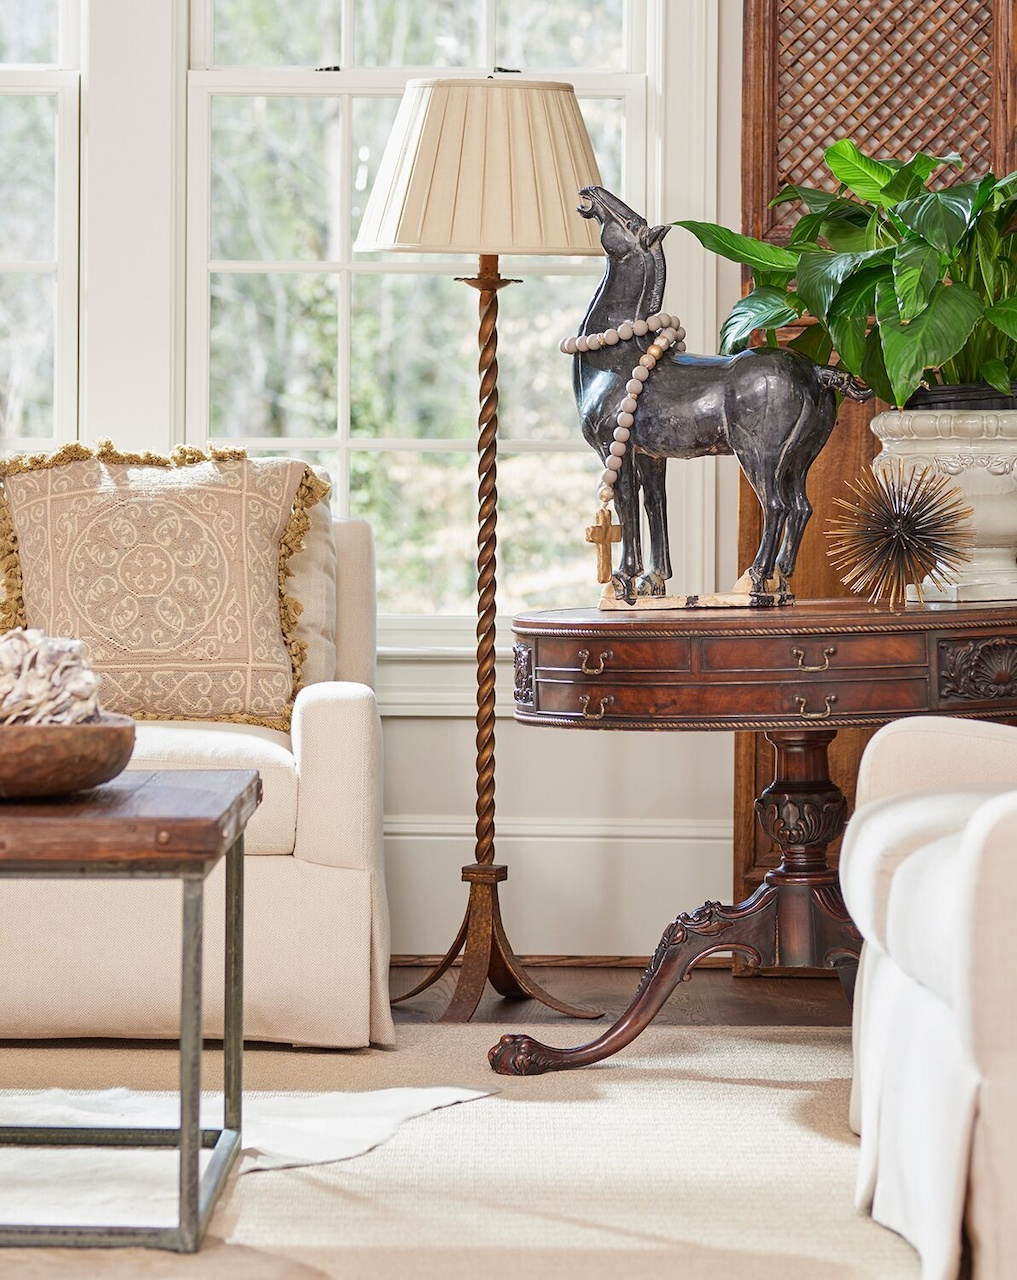 An antique table adds the patina of old wood to the family room.